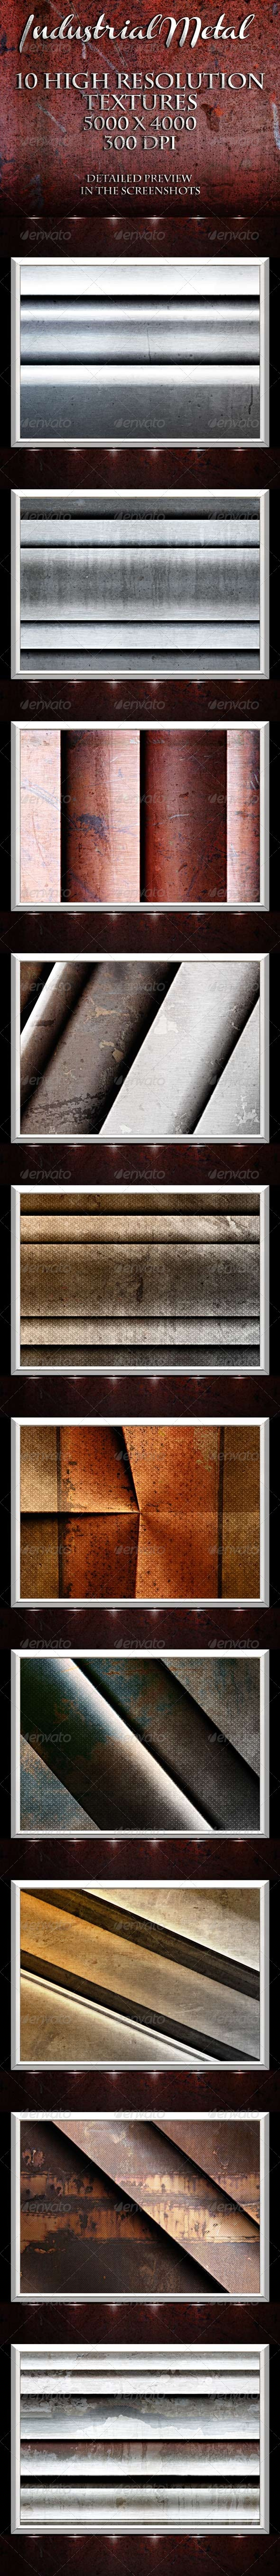 Industrial Metal - Tech / Futuristic Backgrounds